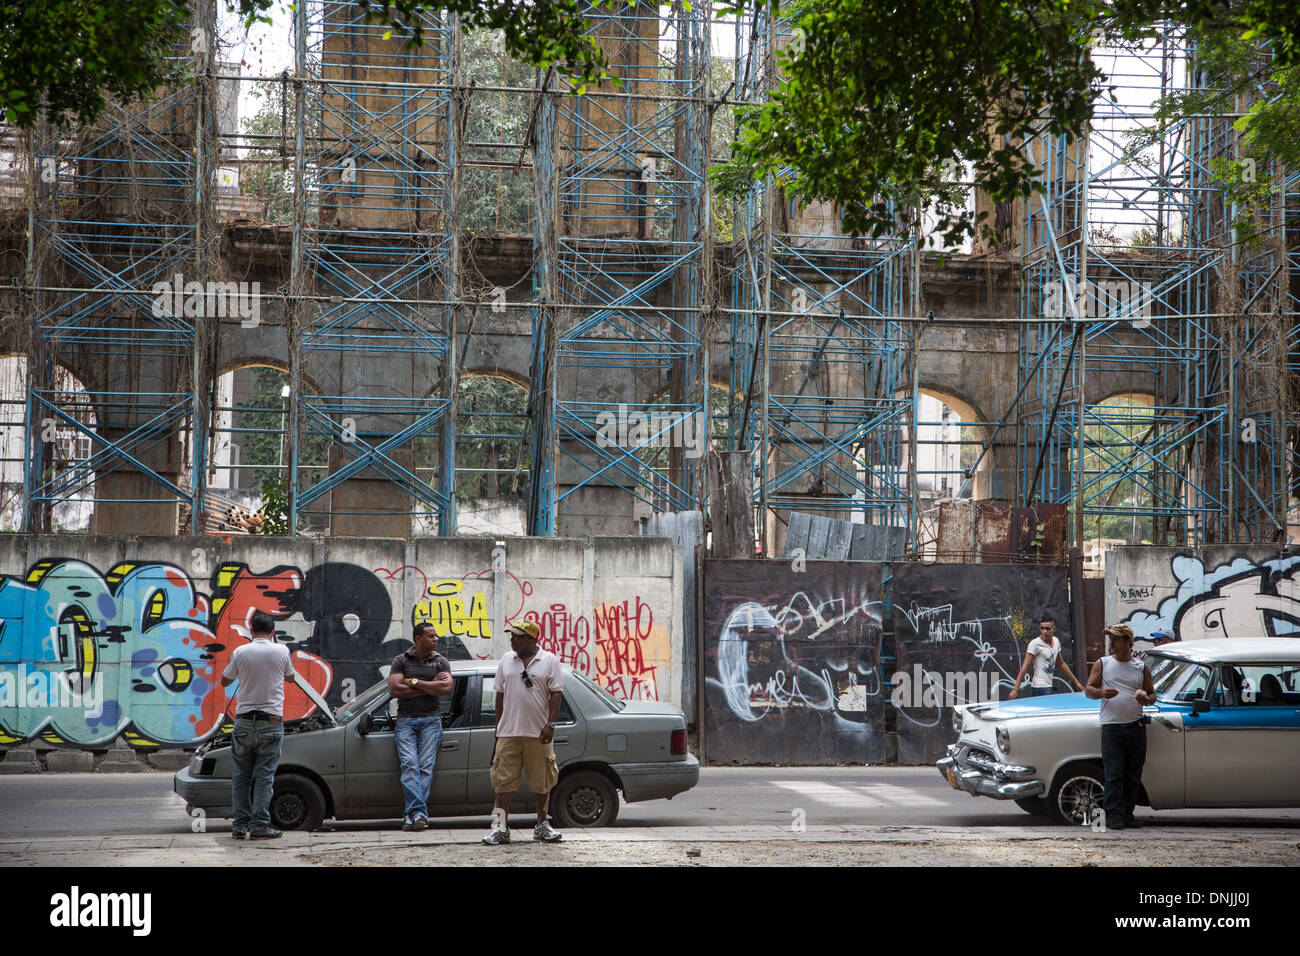 OLD AMERICAN CARS ON A STREET, DAILY LIFE, CALLE TENIENTE REY, HAVANA, CUBA, THE CARIBBEAN - Stock Image